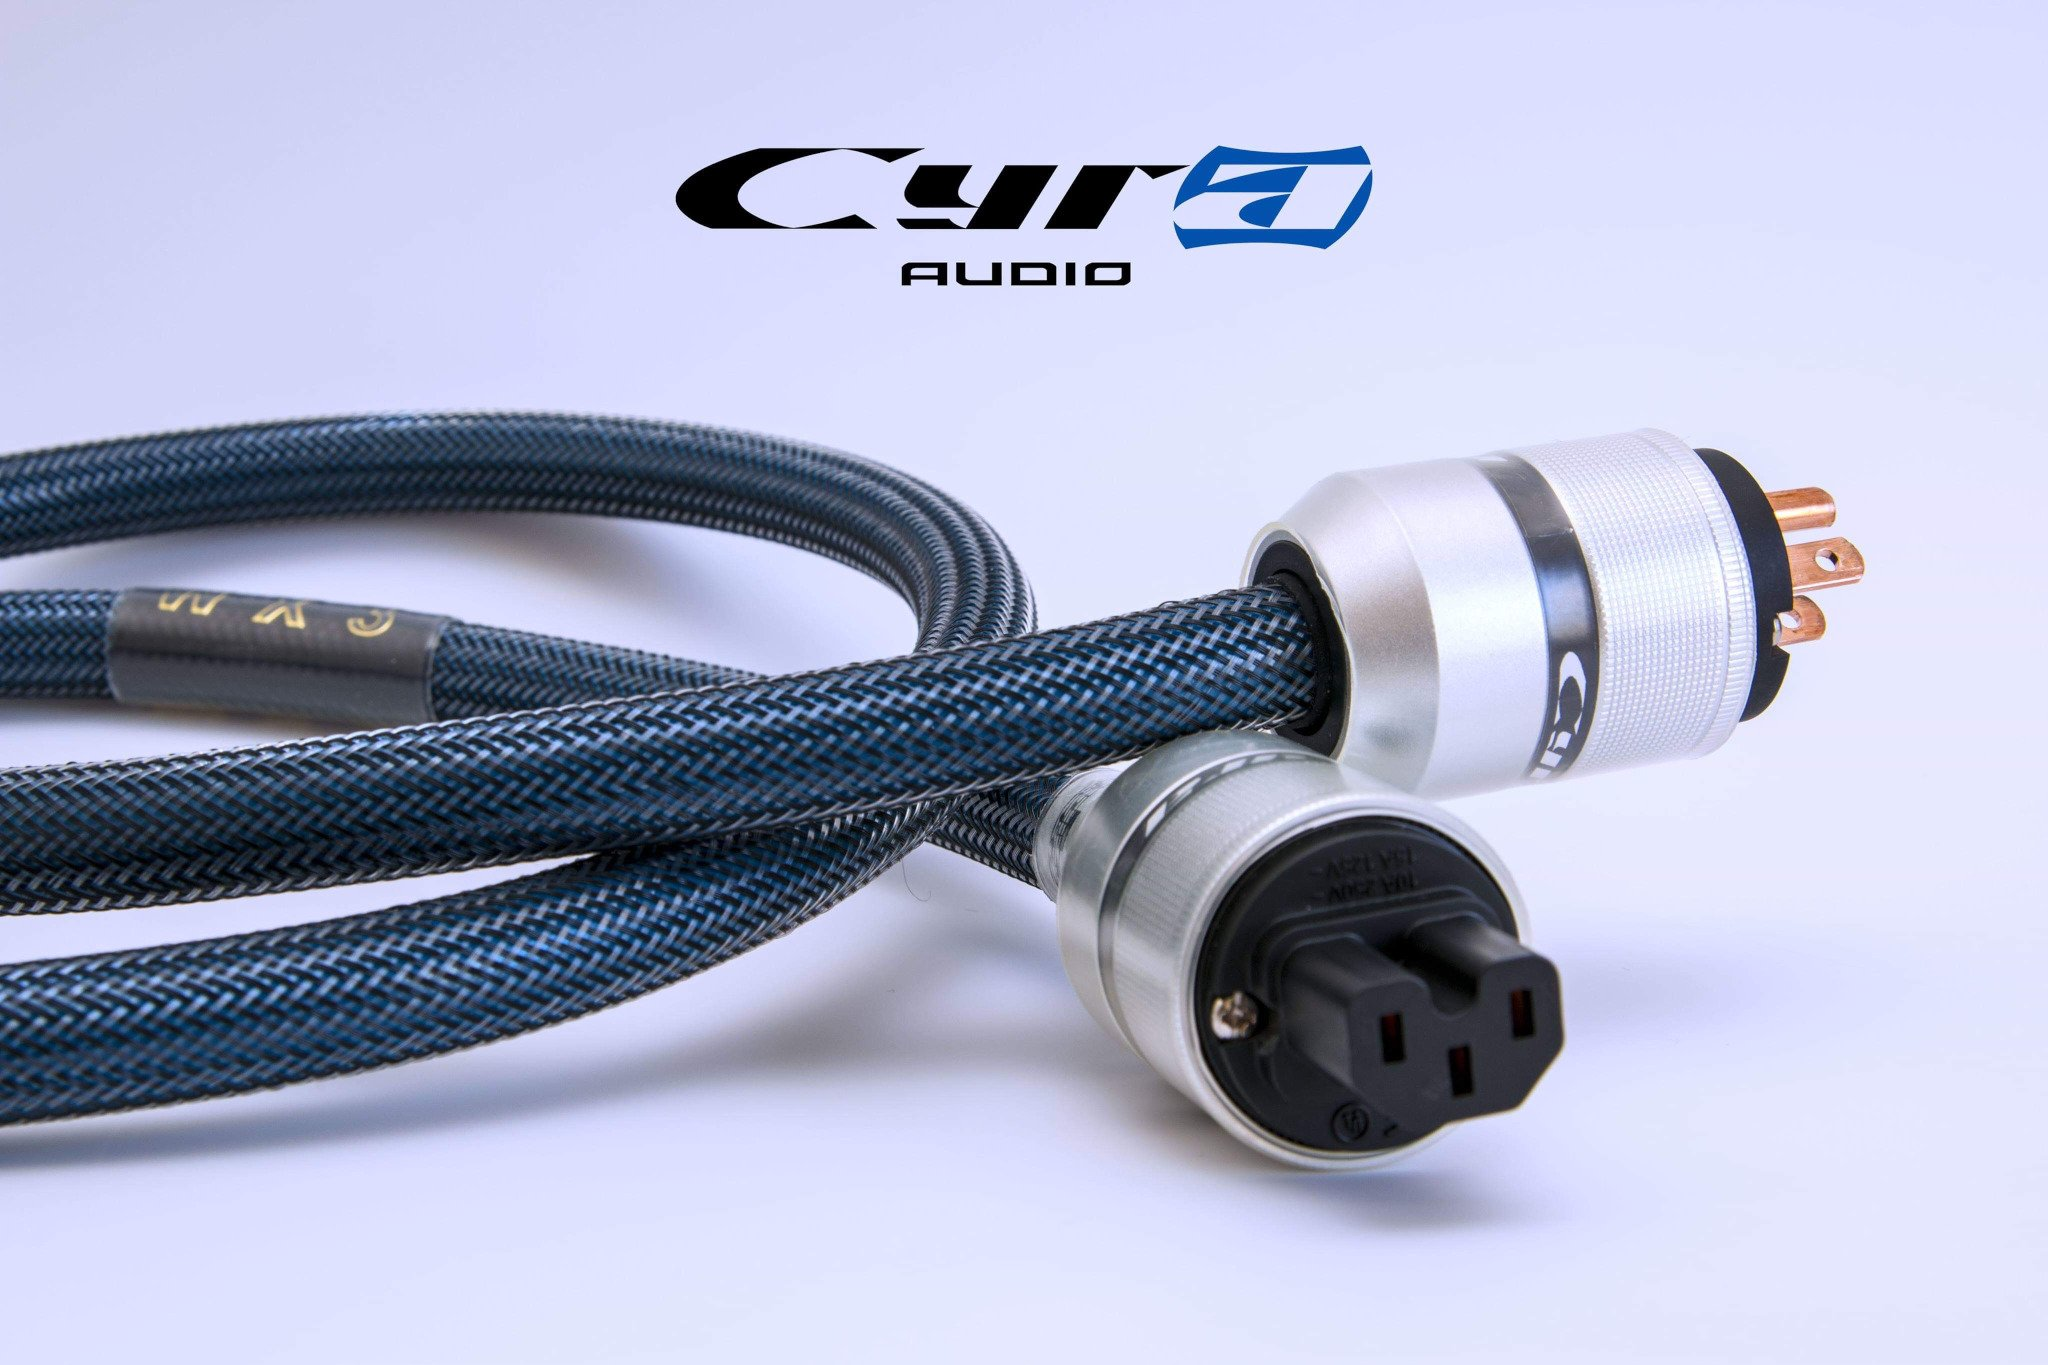 Cyra Audio Câble AC WX3